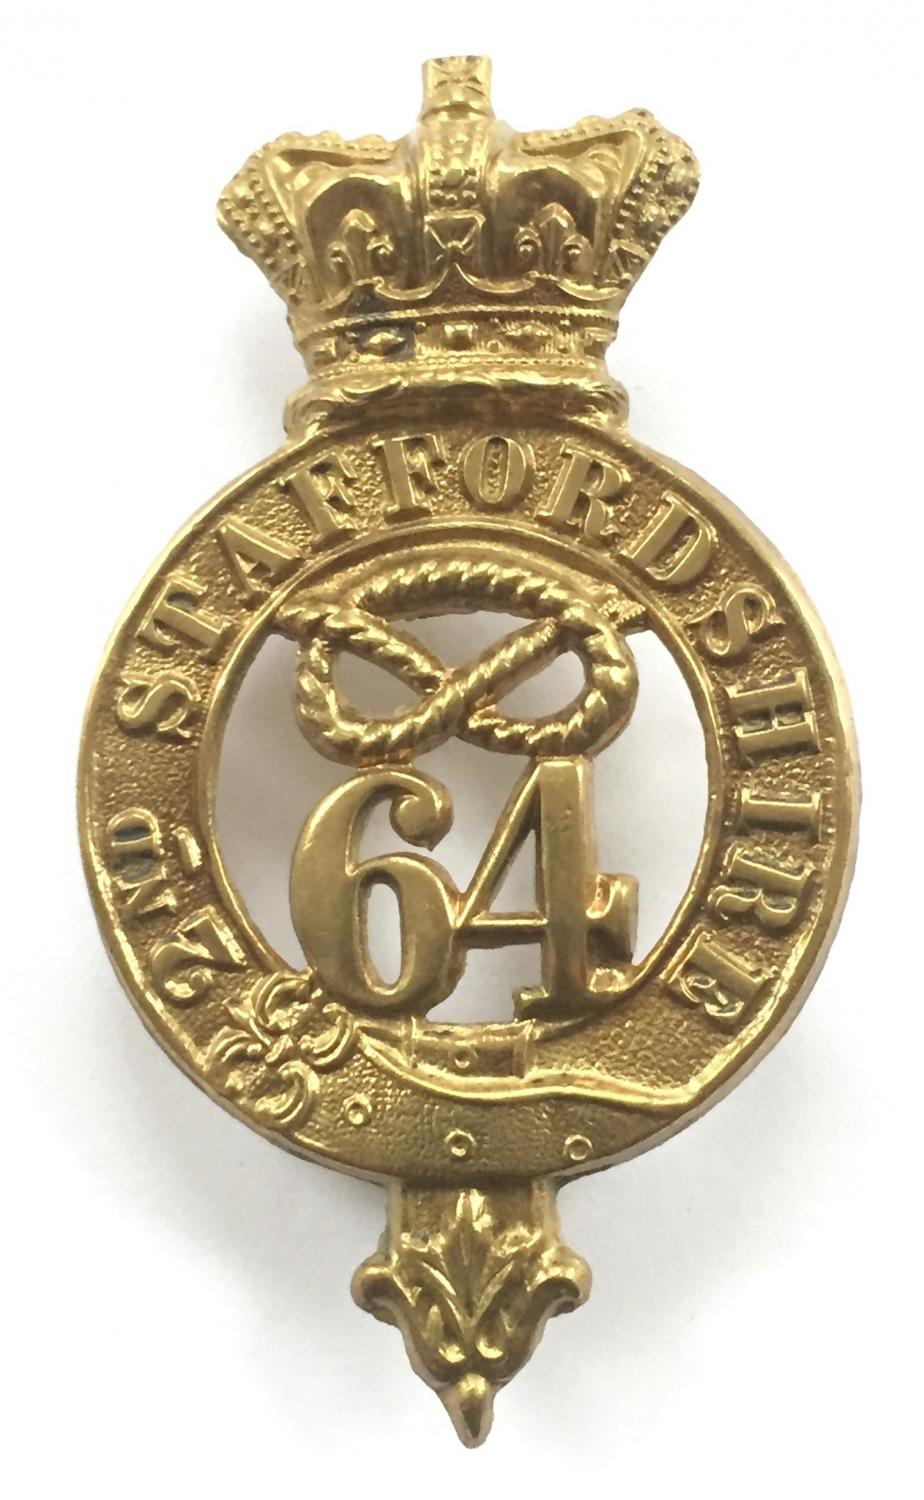 64th (2nd Staffs) Regiment of Foot Victorian glengarry badge 1874-81